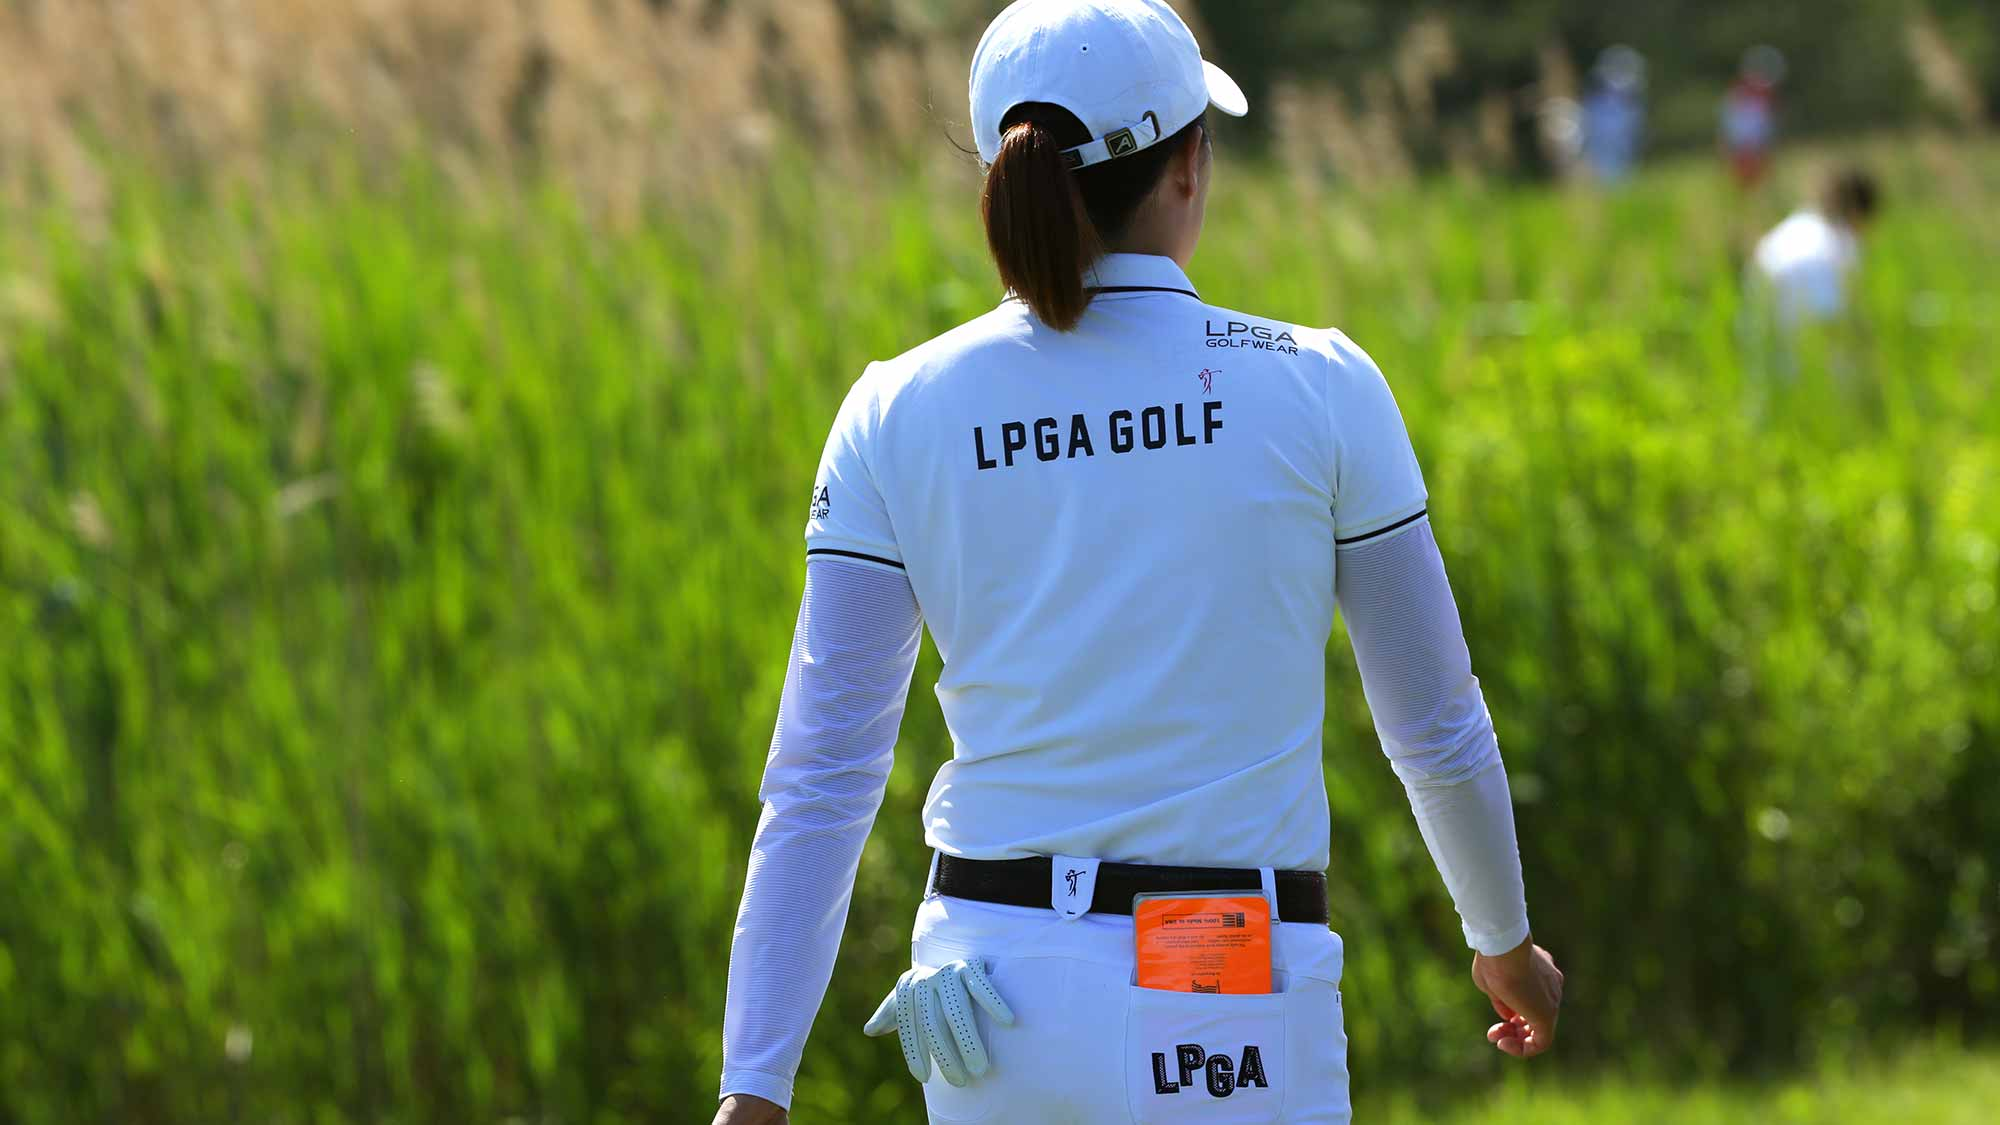 First Store Opens With Plan For More. DAYTONA BEACH, FL & SEOUL, KOREA (September 1, ) - The Ladies Professional Golf Association (LPGA) announced that its first retail store, called LPGA.